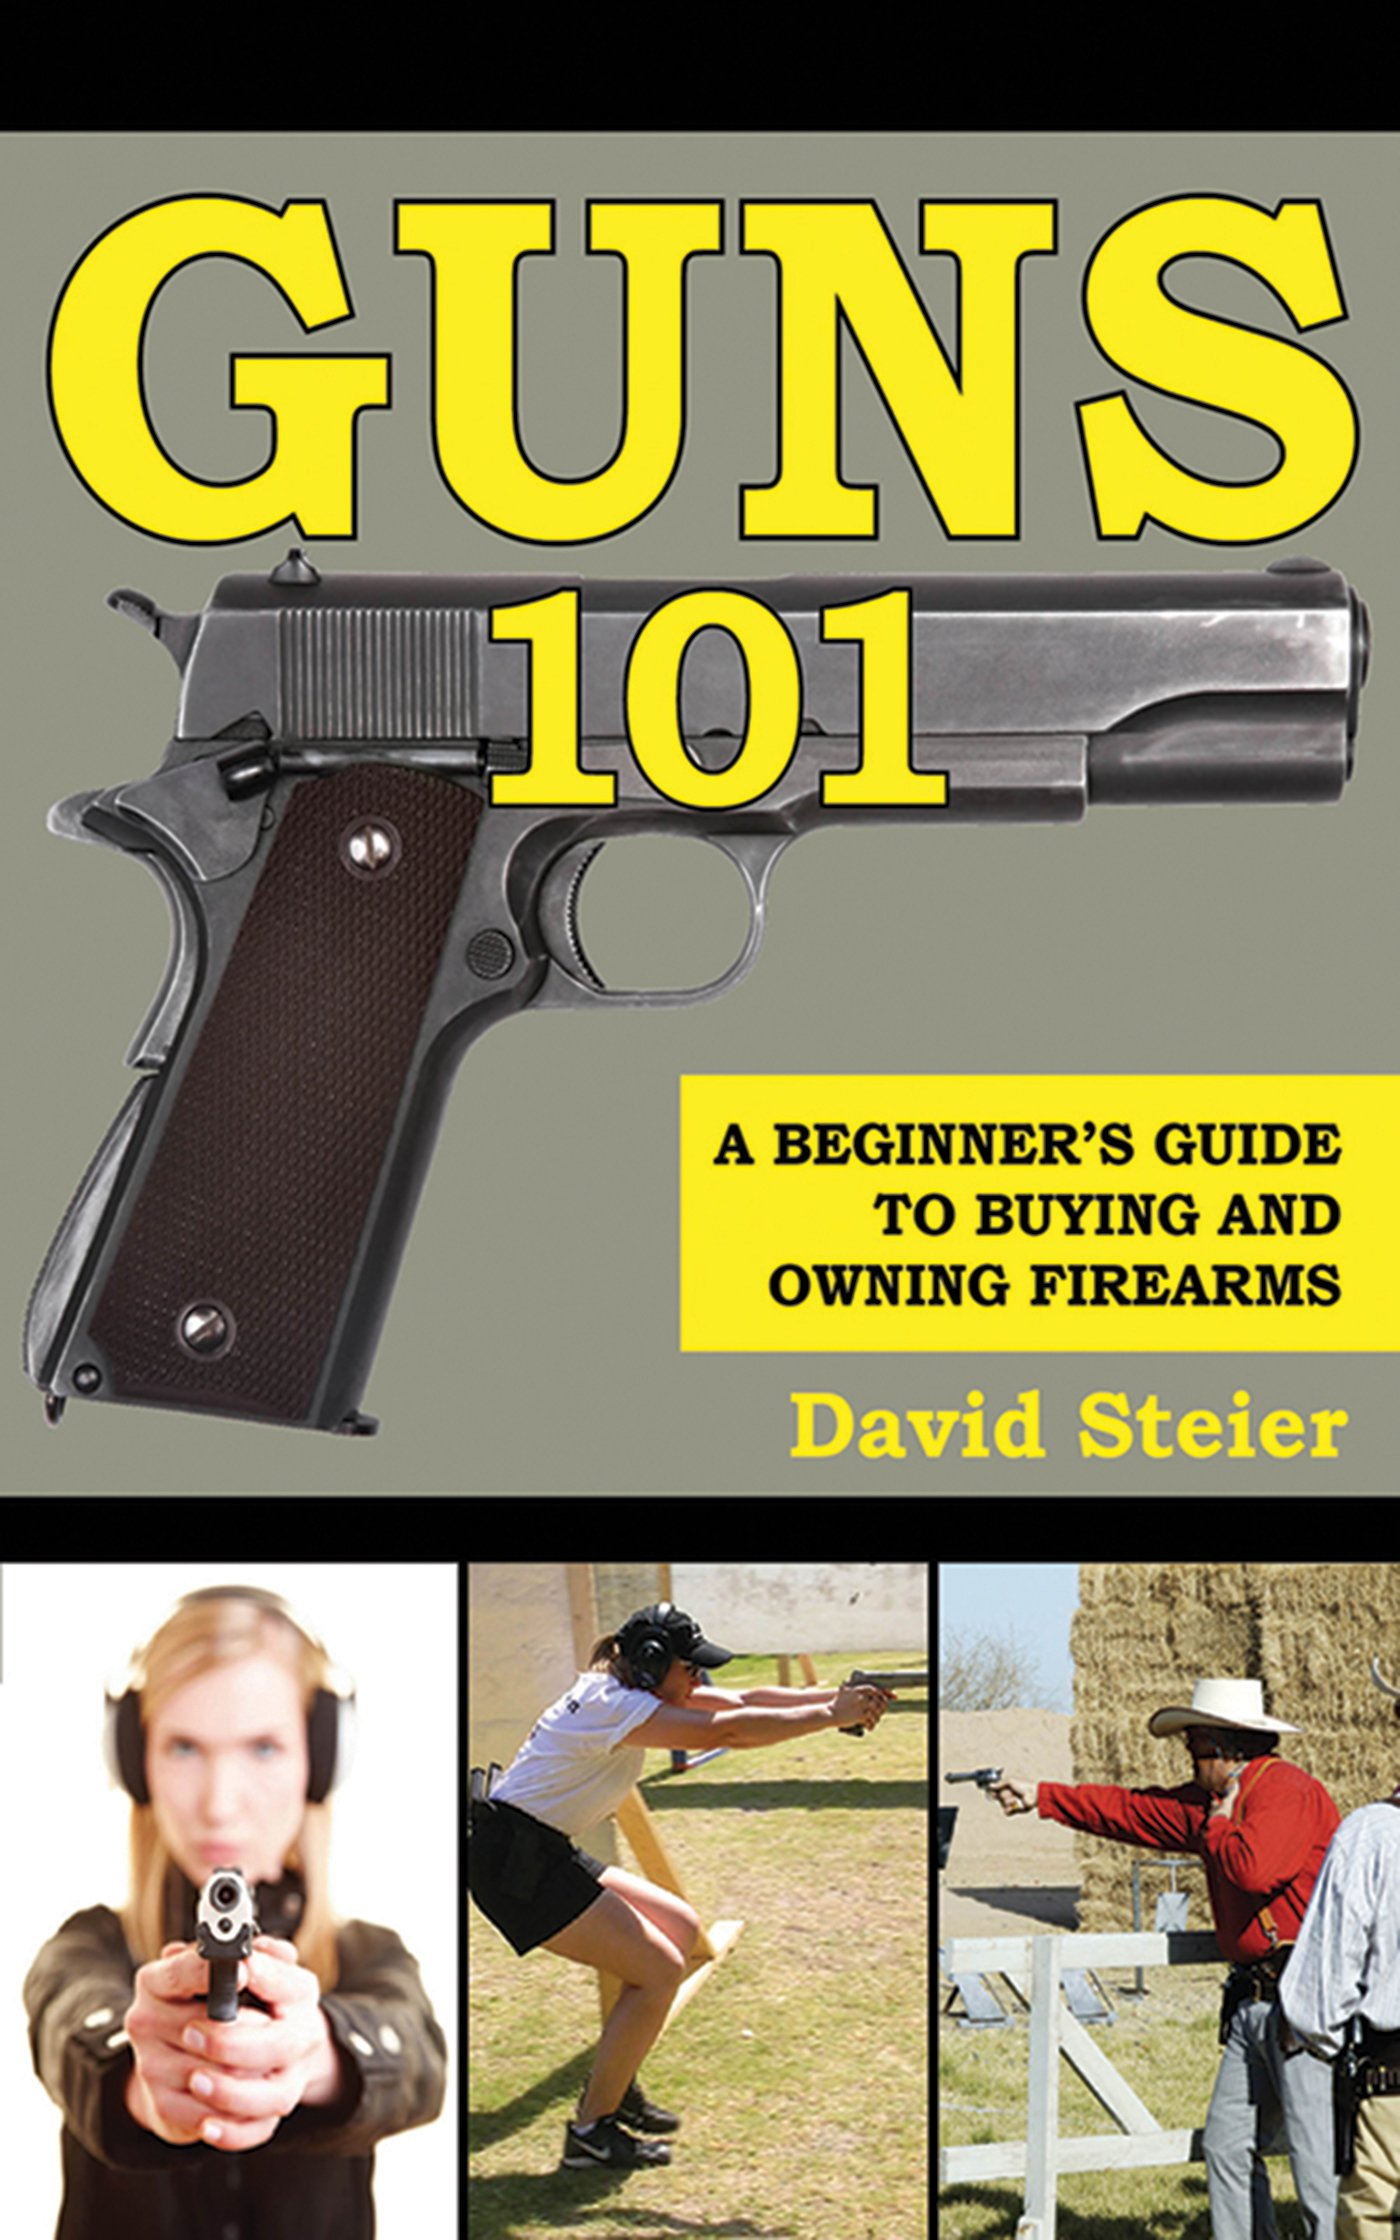 Guns 101: A Beginner's Guide to Buying and Owning Firearms Paperback – June 22, 2011 David Steier Skyhorse Publishing 1616082879 Firearms.